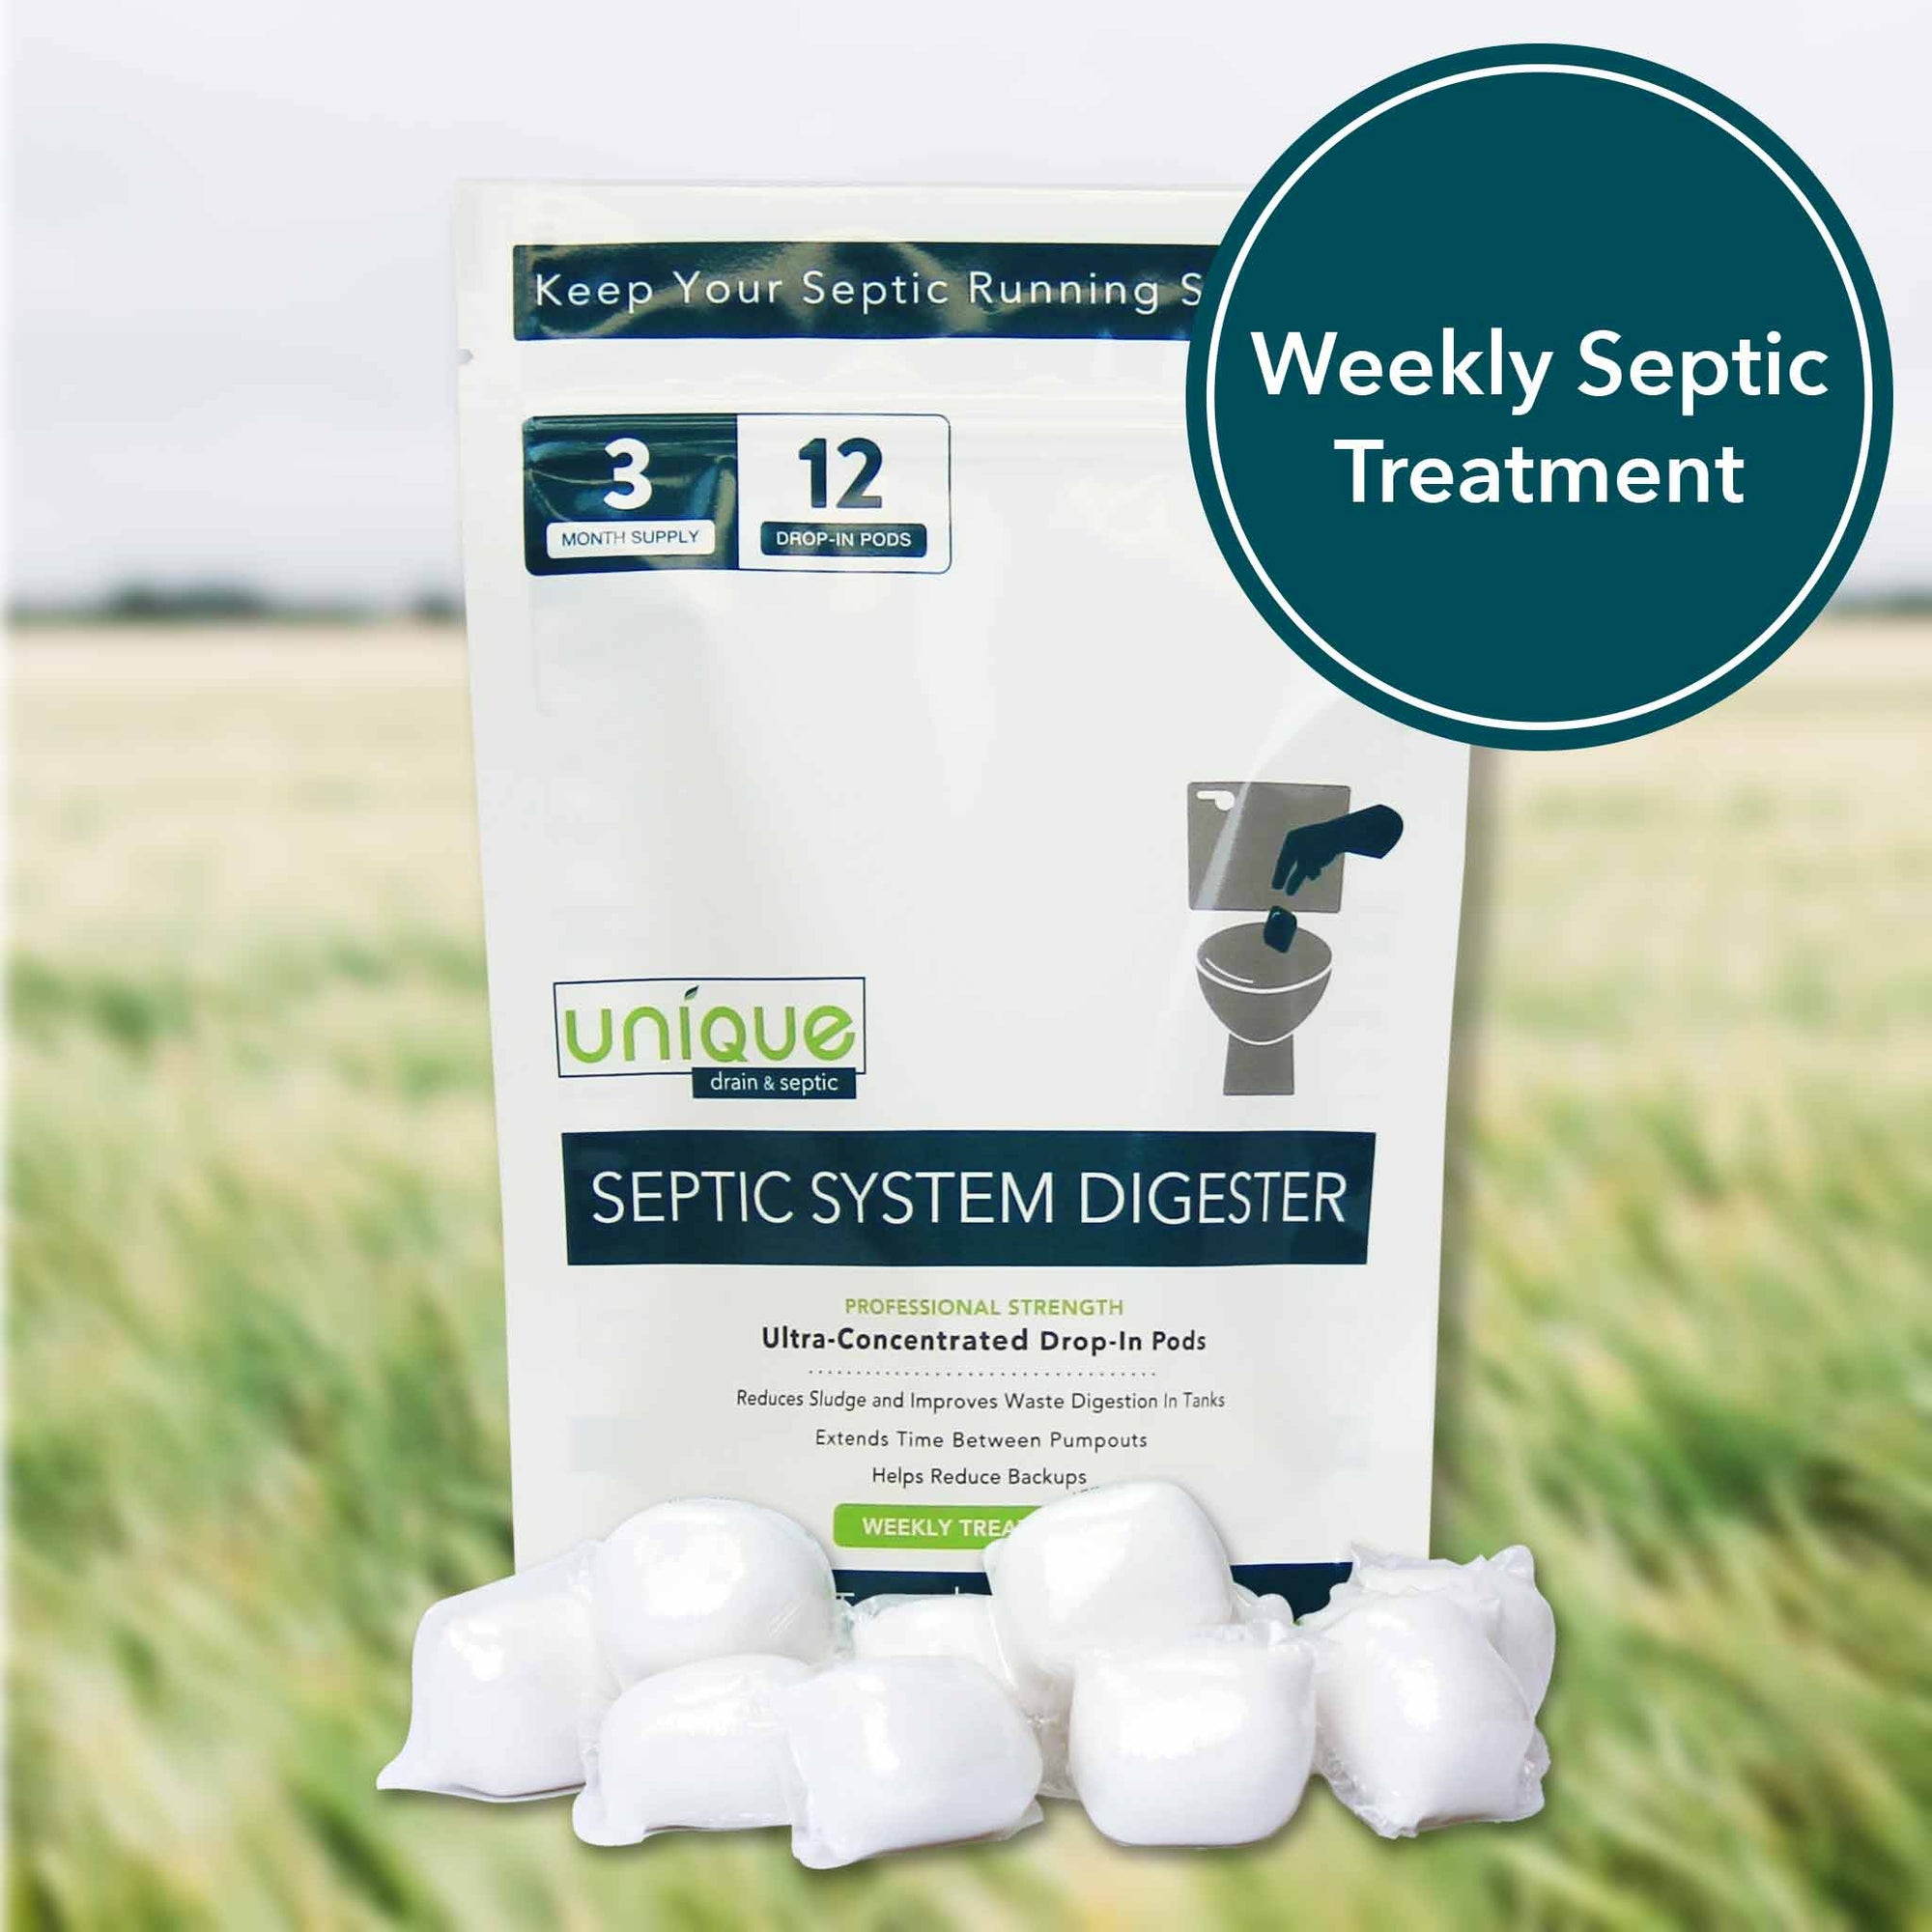 Septic System Digester treats your septic system with powerful digestive microbes that break down waste inside your tank. Unique Drain + Septic